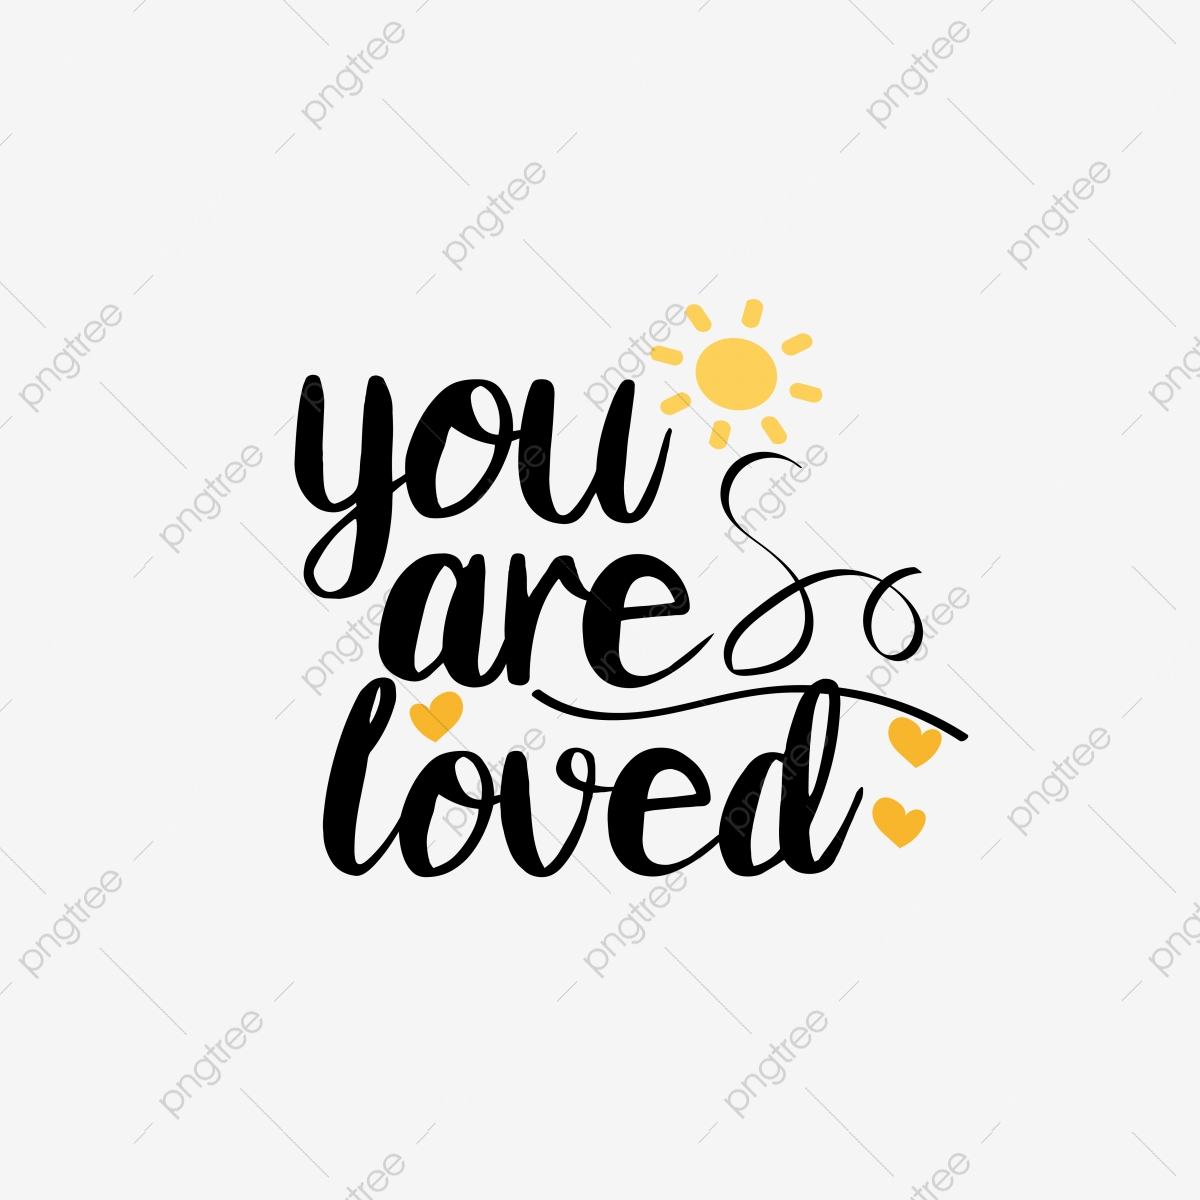 Svg Cartoon Black You Are So Loved English Alphabet Hand Drawn Illustration Font Effect Eps For Free Download